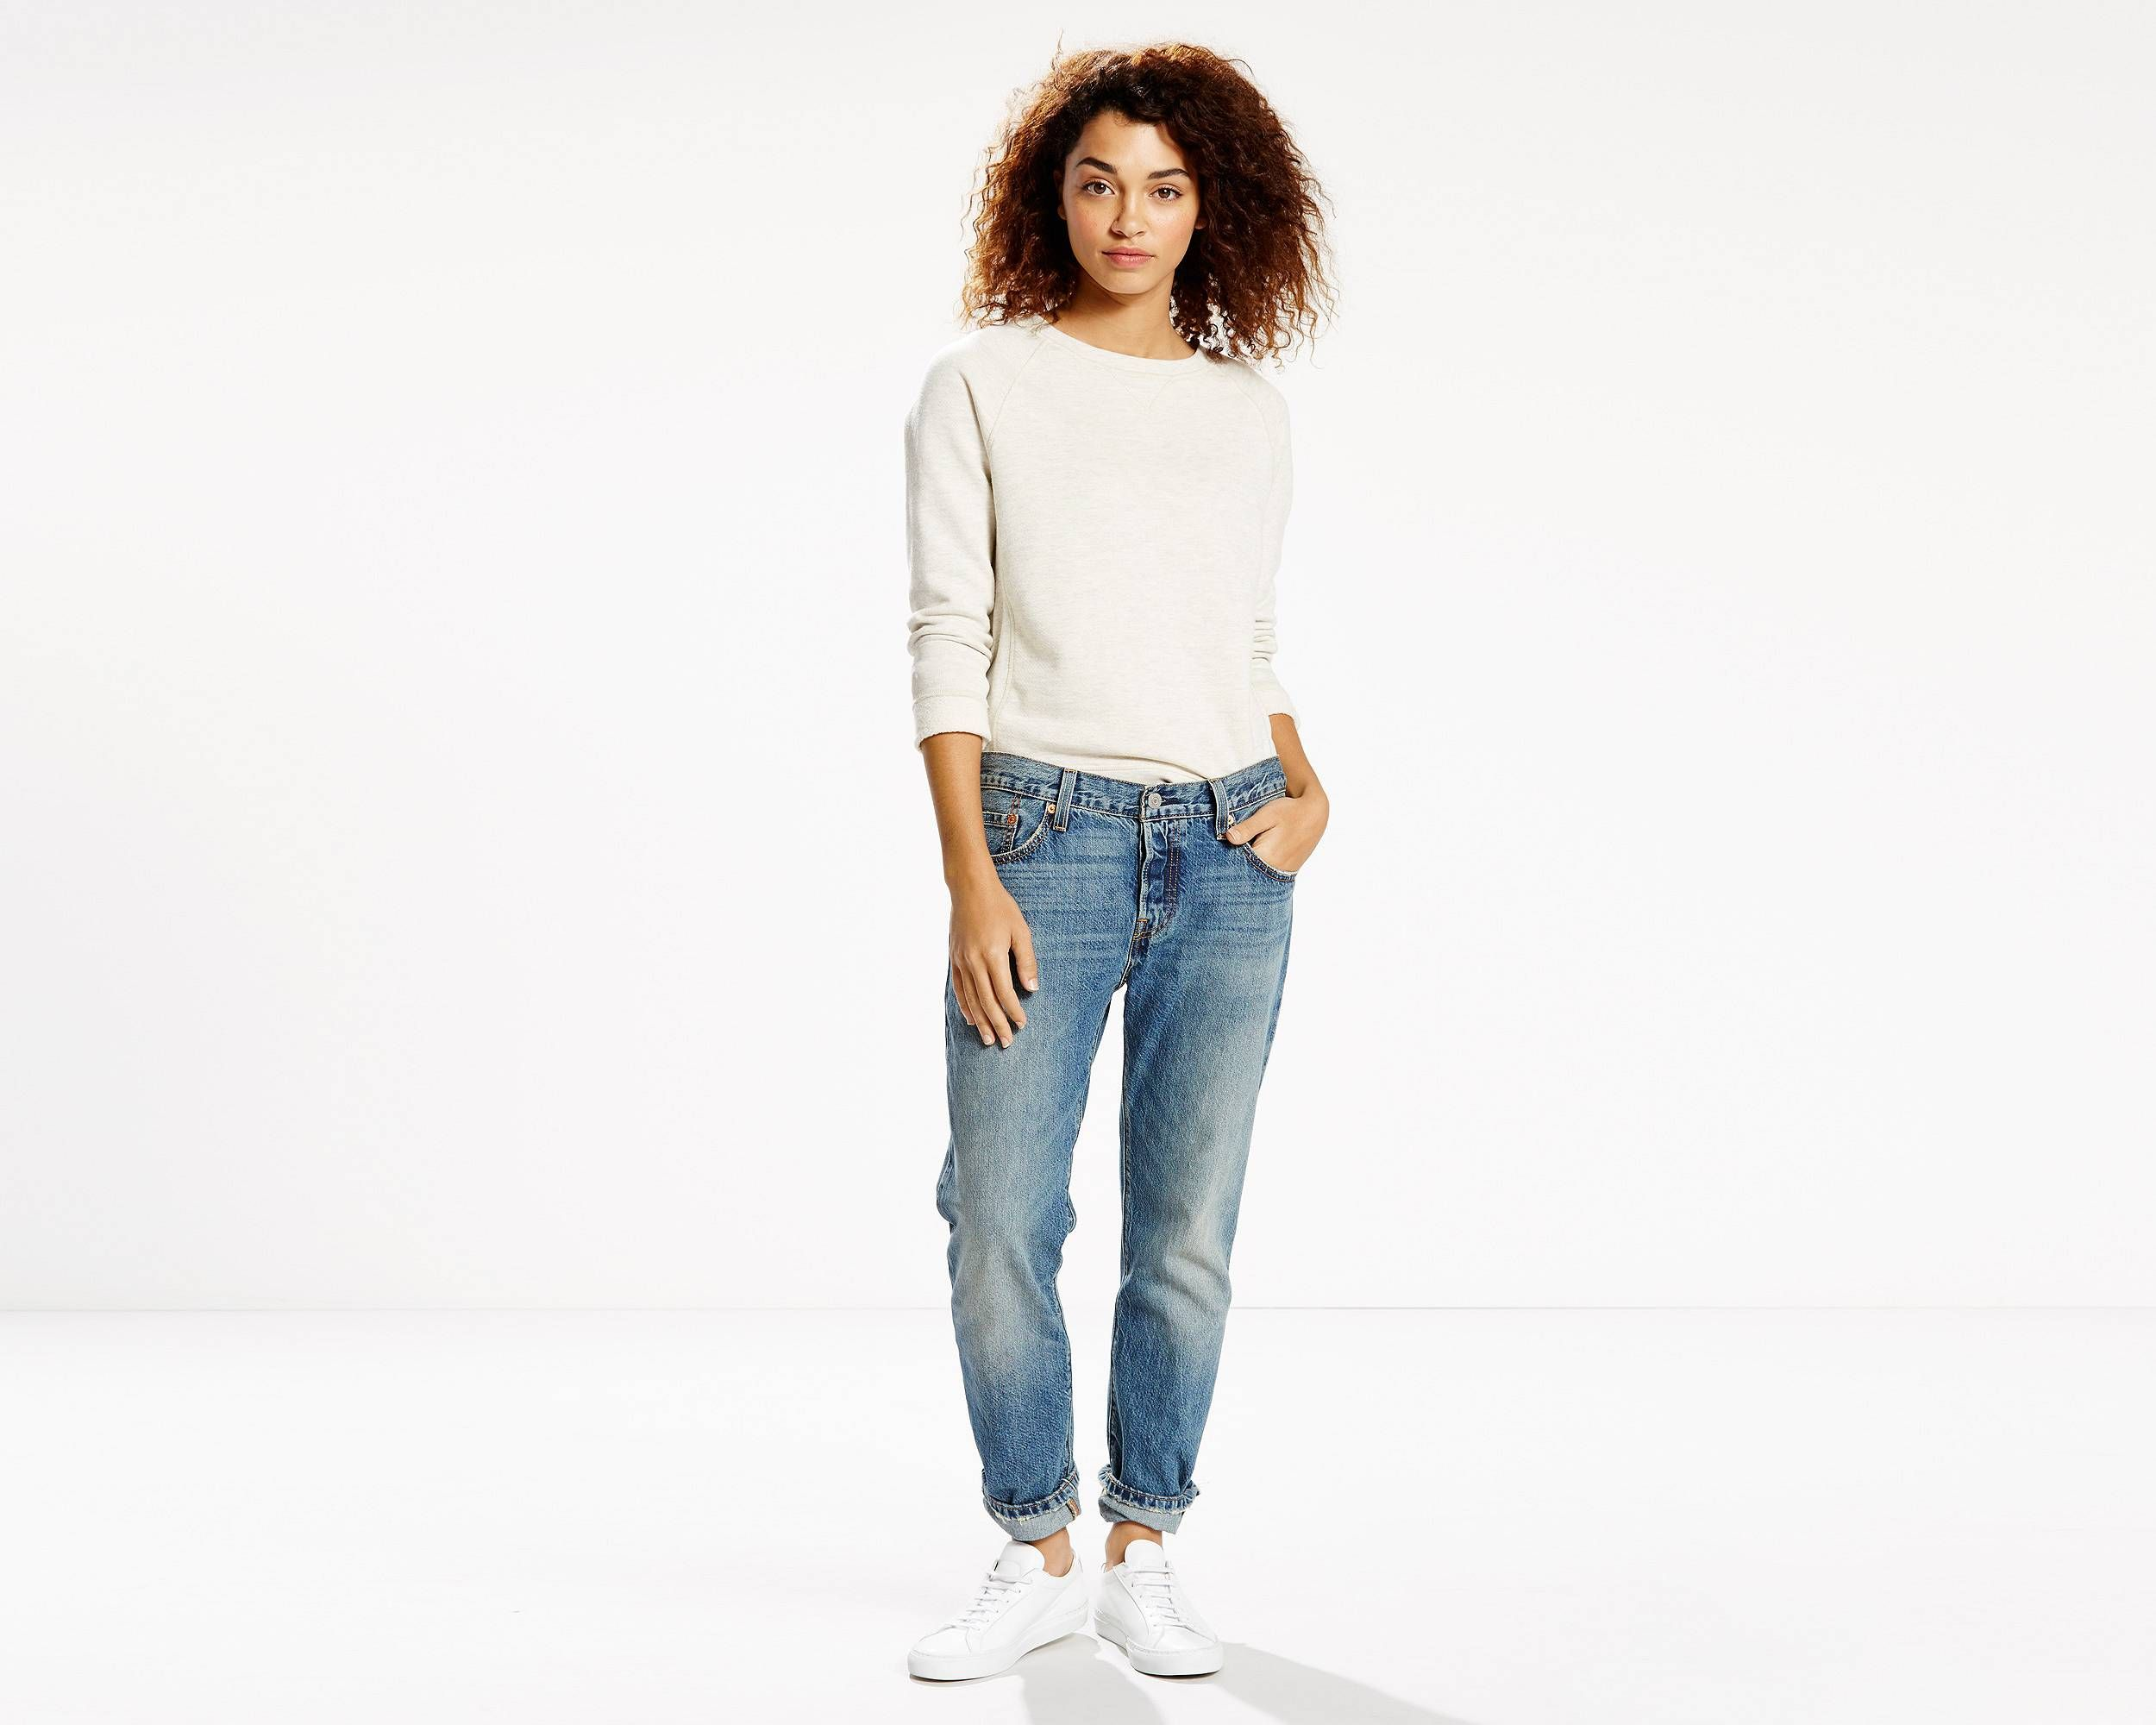 The evolution of an icon. The 501® Original, customized with a perfect tapered leg. With a classic button fly, the 501® CT Jeans feature a straight fit through the hip and thigh with a tapered leg that we wear rolled for style. Size up for a relaxed look or downsized and sexy, depending on your style. This pair comes in premium selvedge denim. Selvedge comes from the term